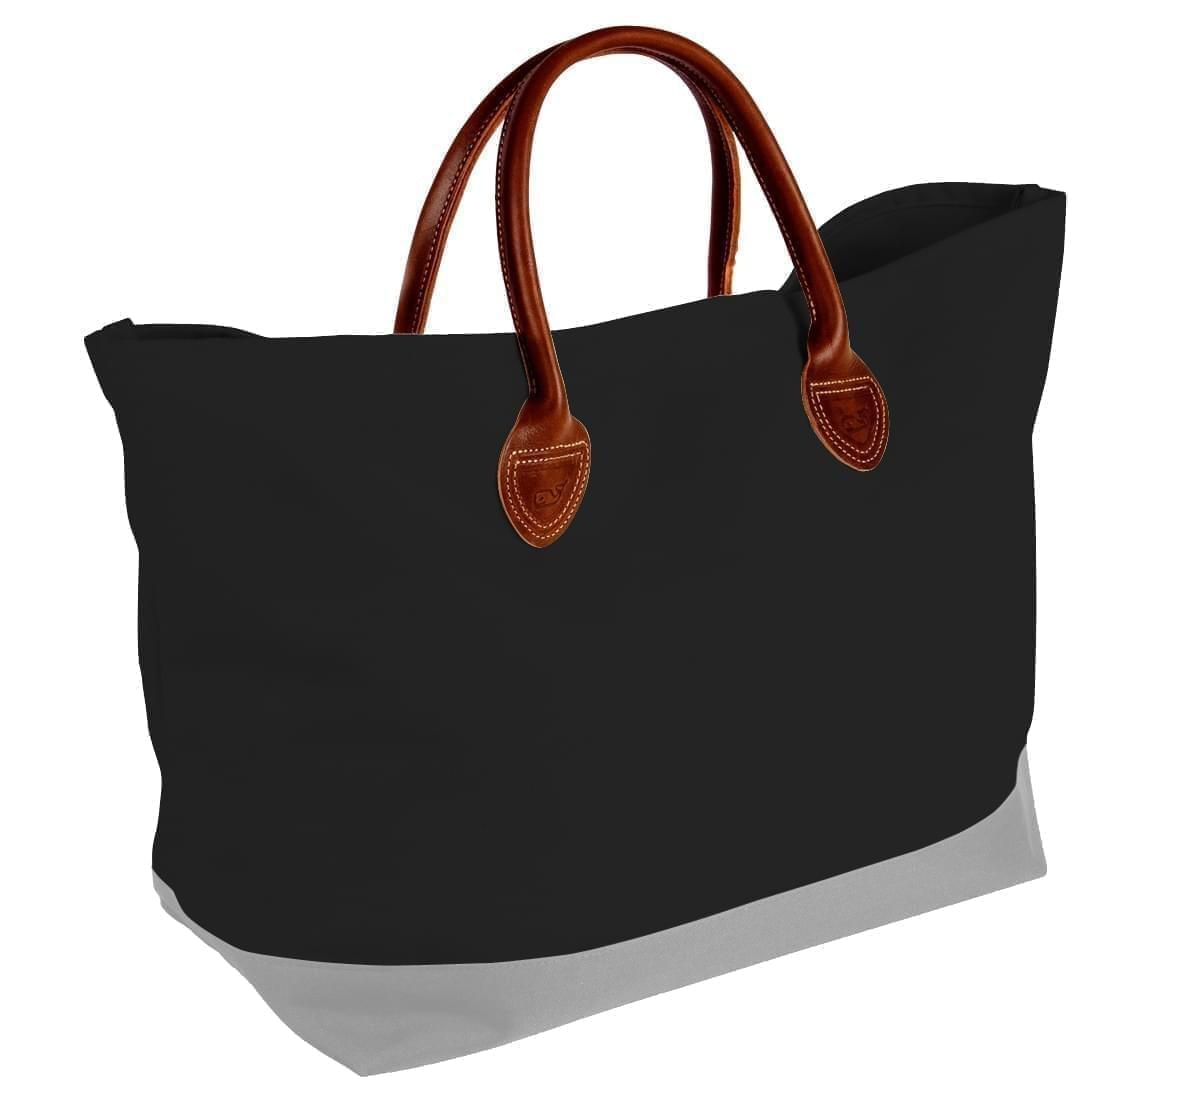 USA Made Canvas Leather Handle Totes, Black-Grey, 10899-NH9